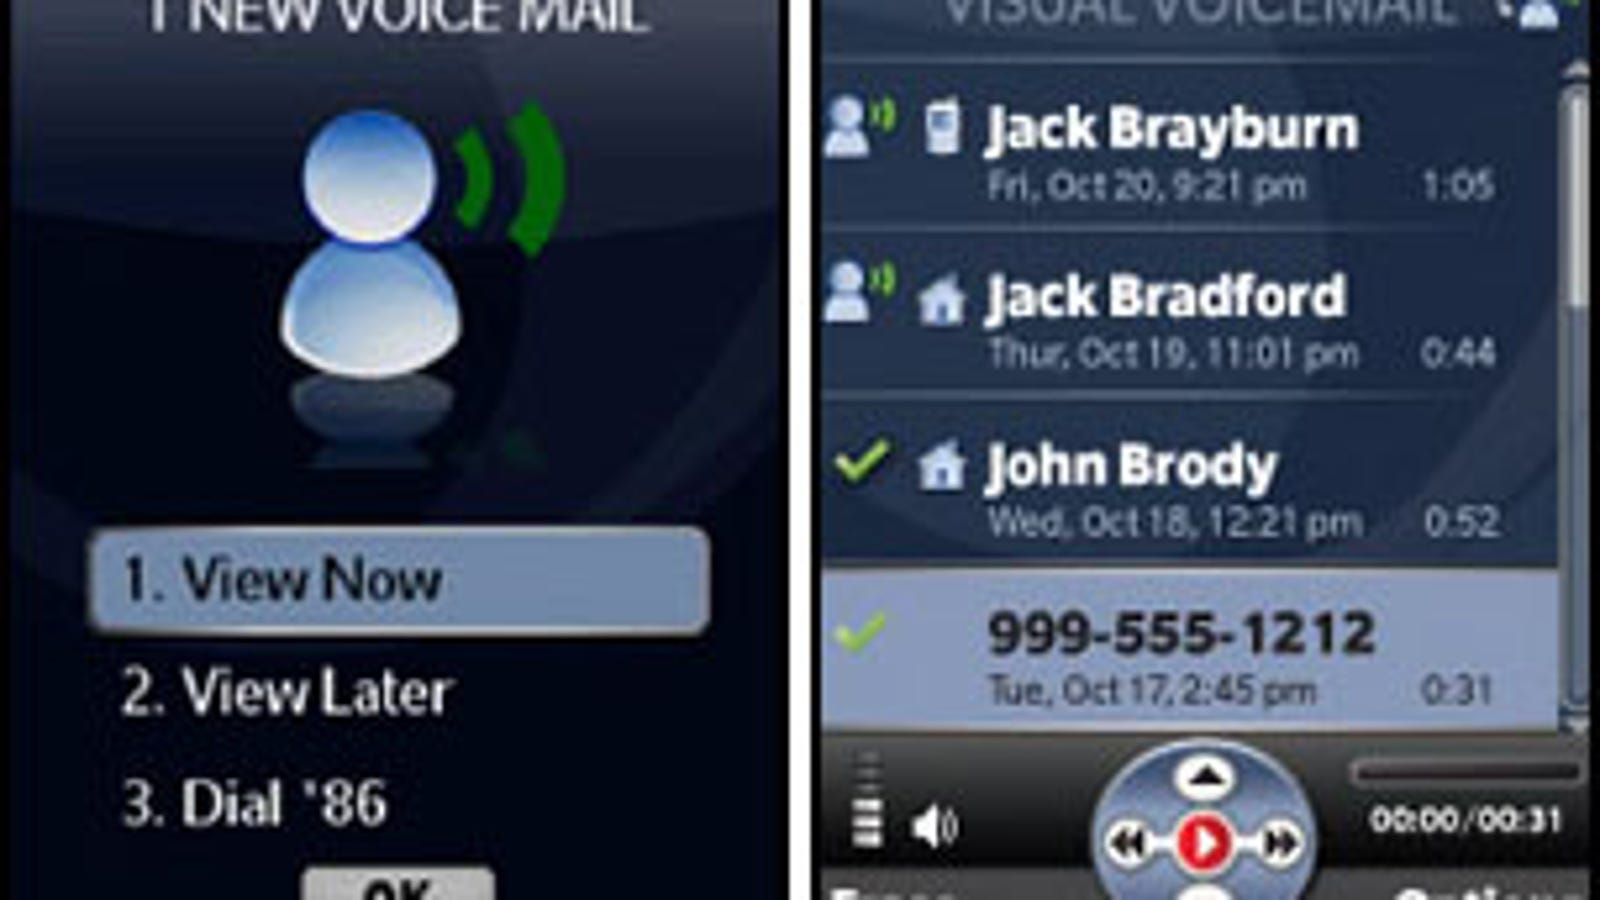 Verizon visual voicemail hits lg voyager sadly not free m4hsunfo